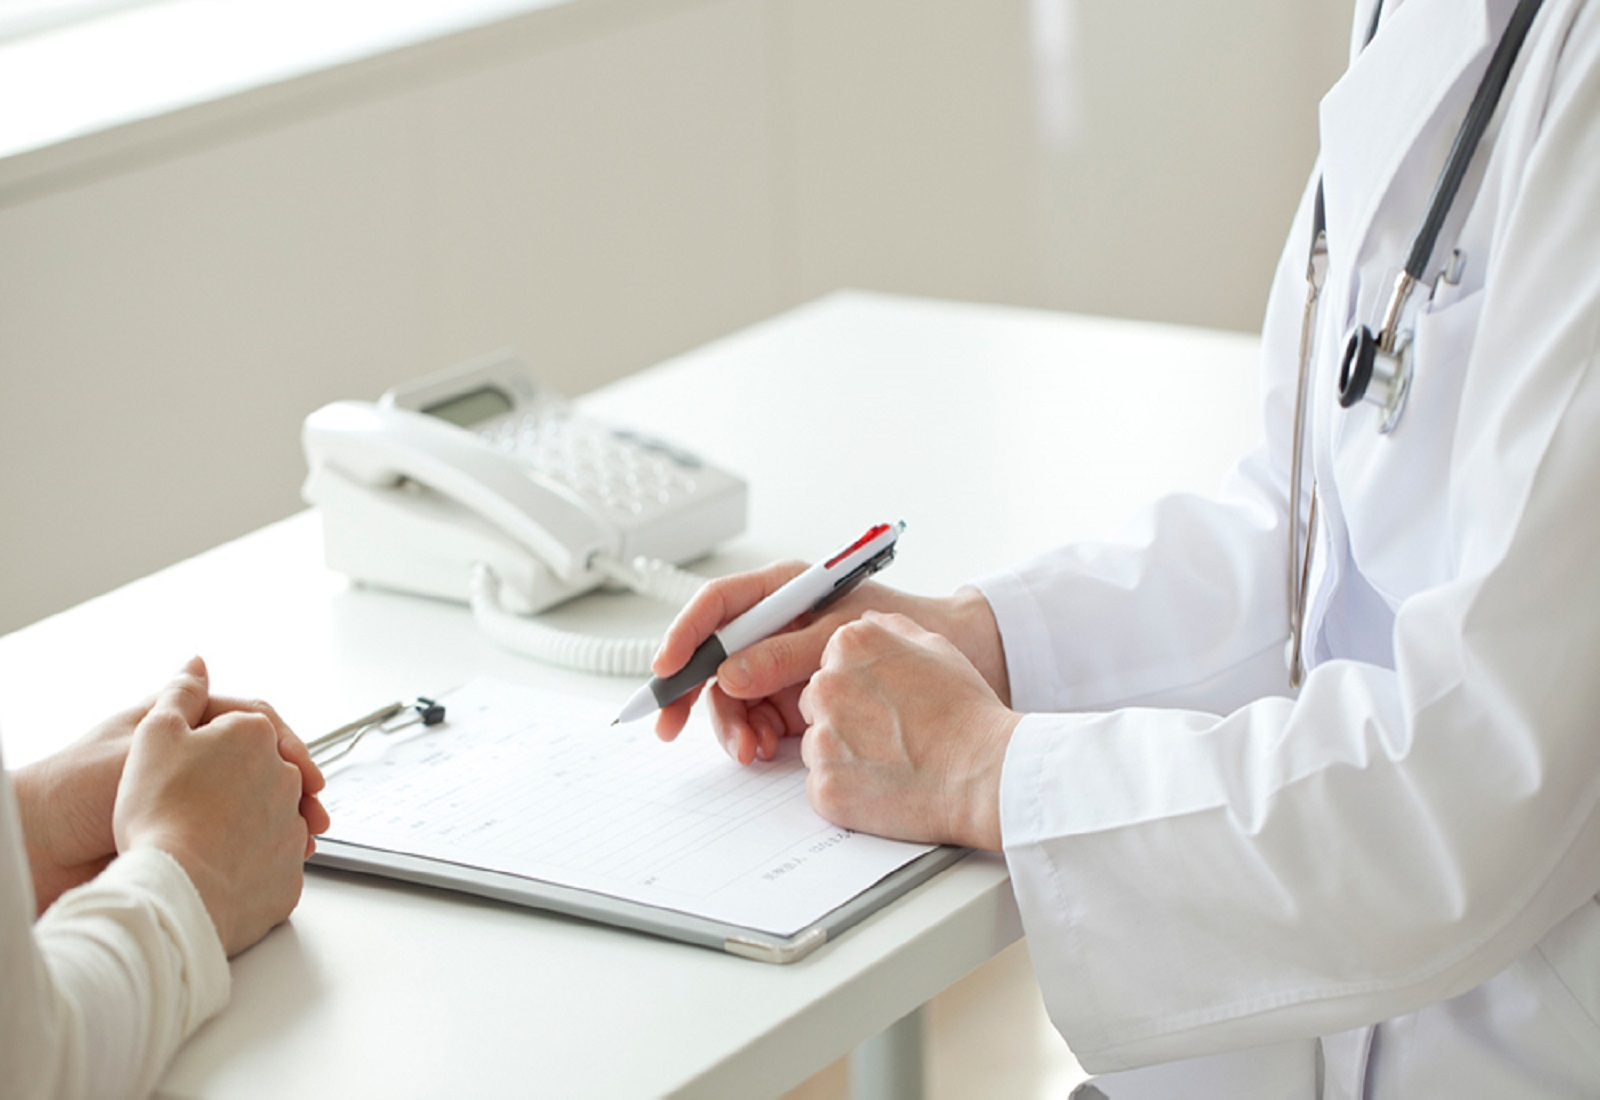 Things you should know before you enroll for Obamacare Health Insurance Plan